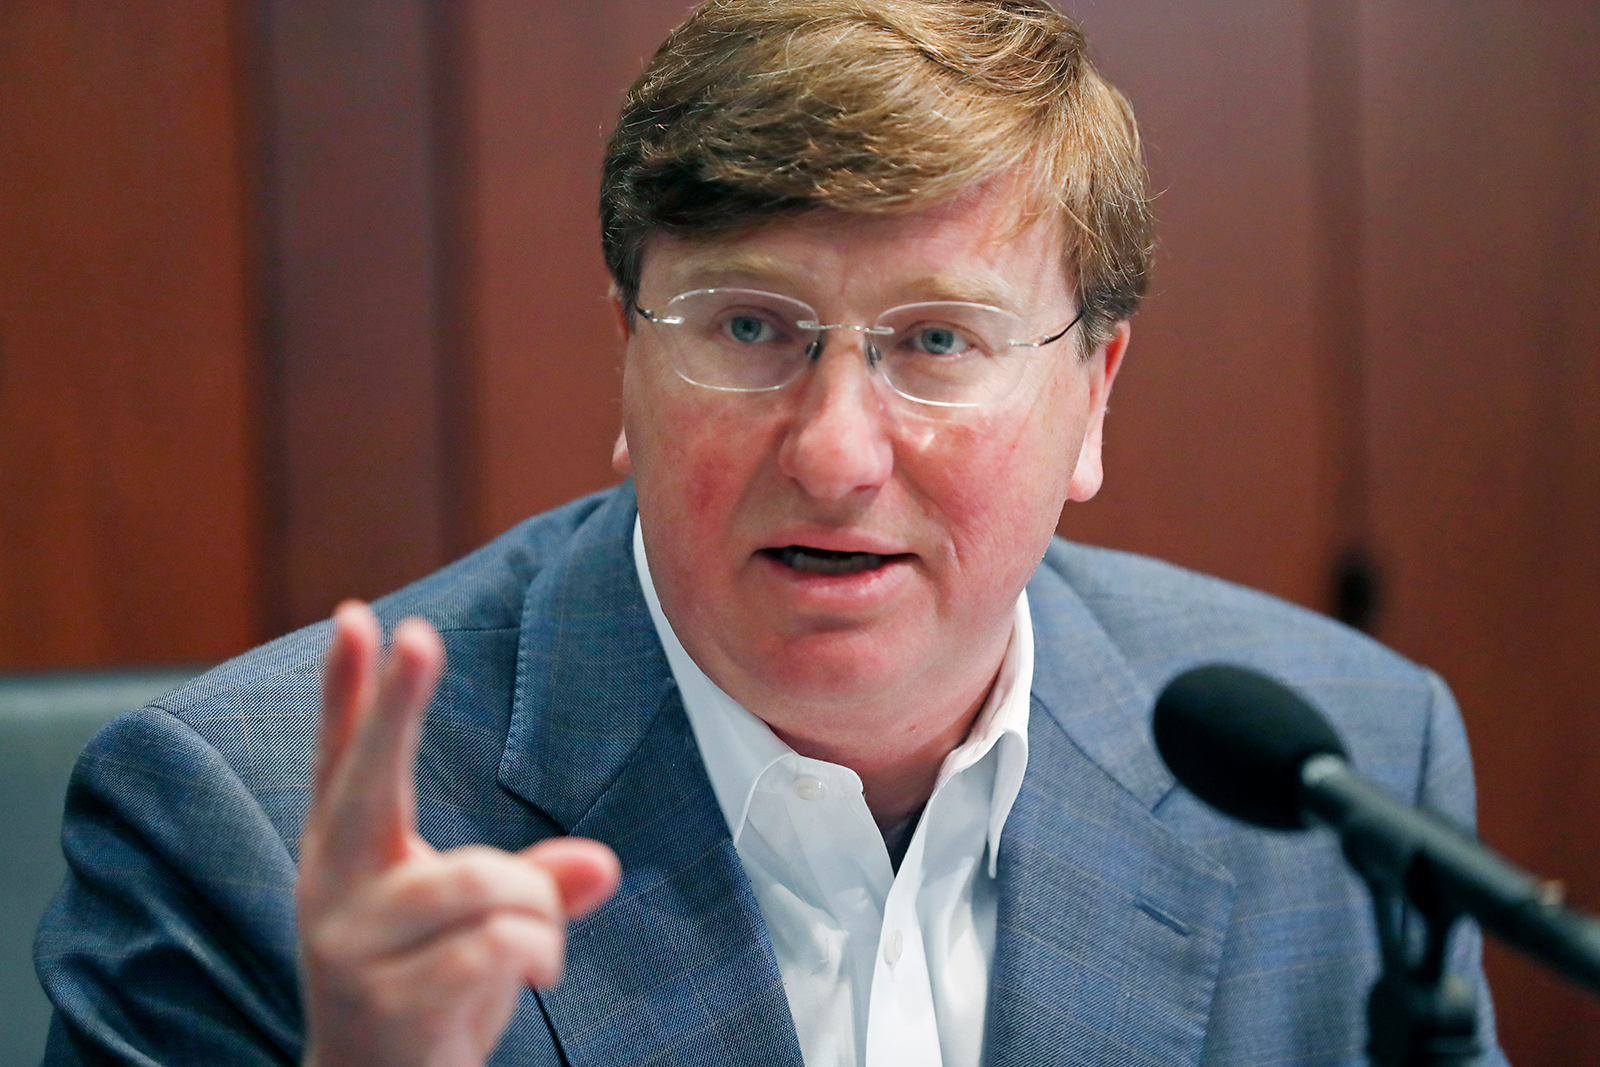 Mississippi Gov. Tate Reeves pictured during his afternoon news conference in Jackson, Miss., on April 21.